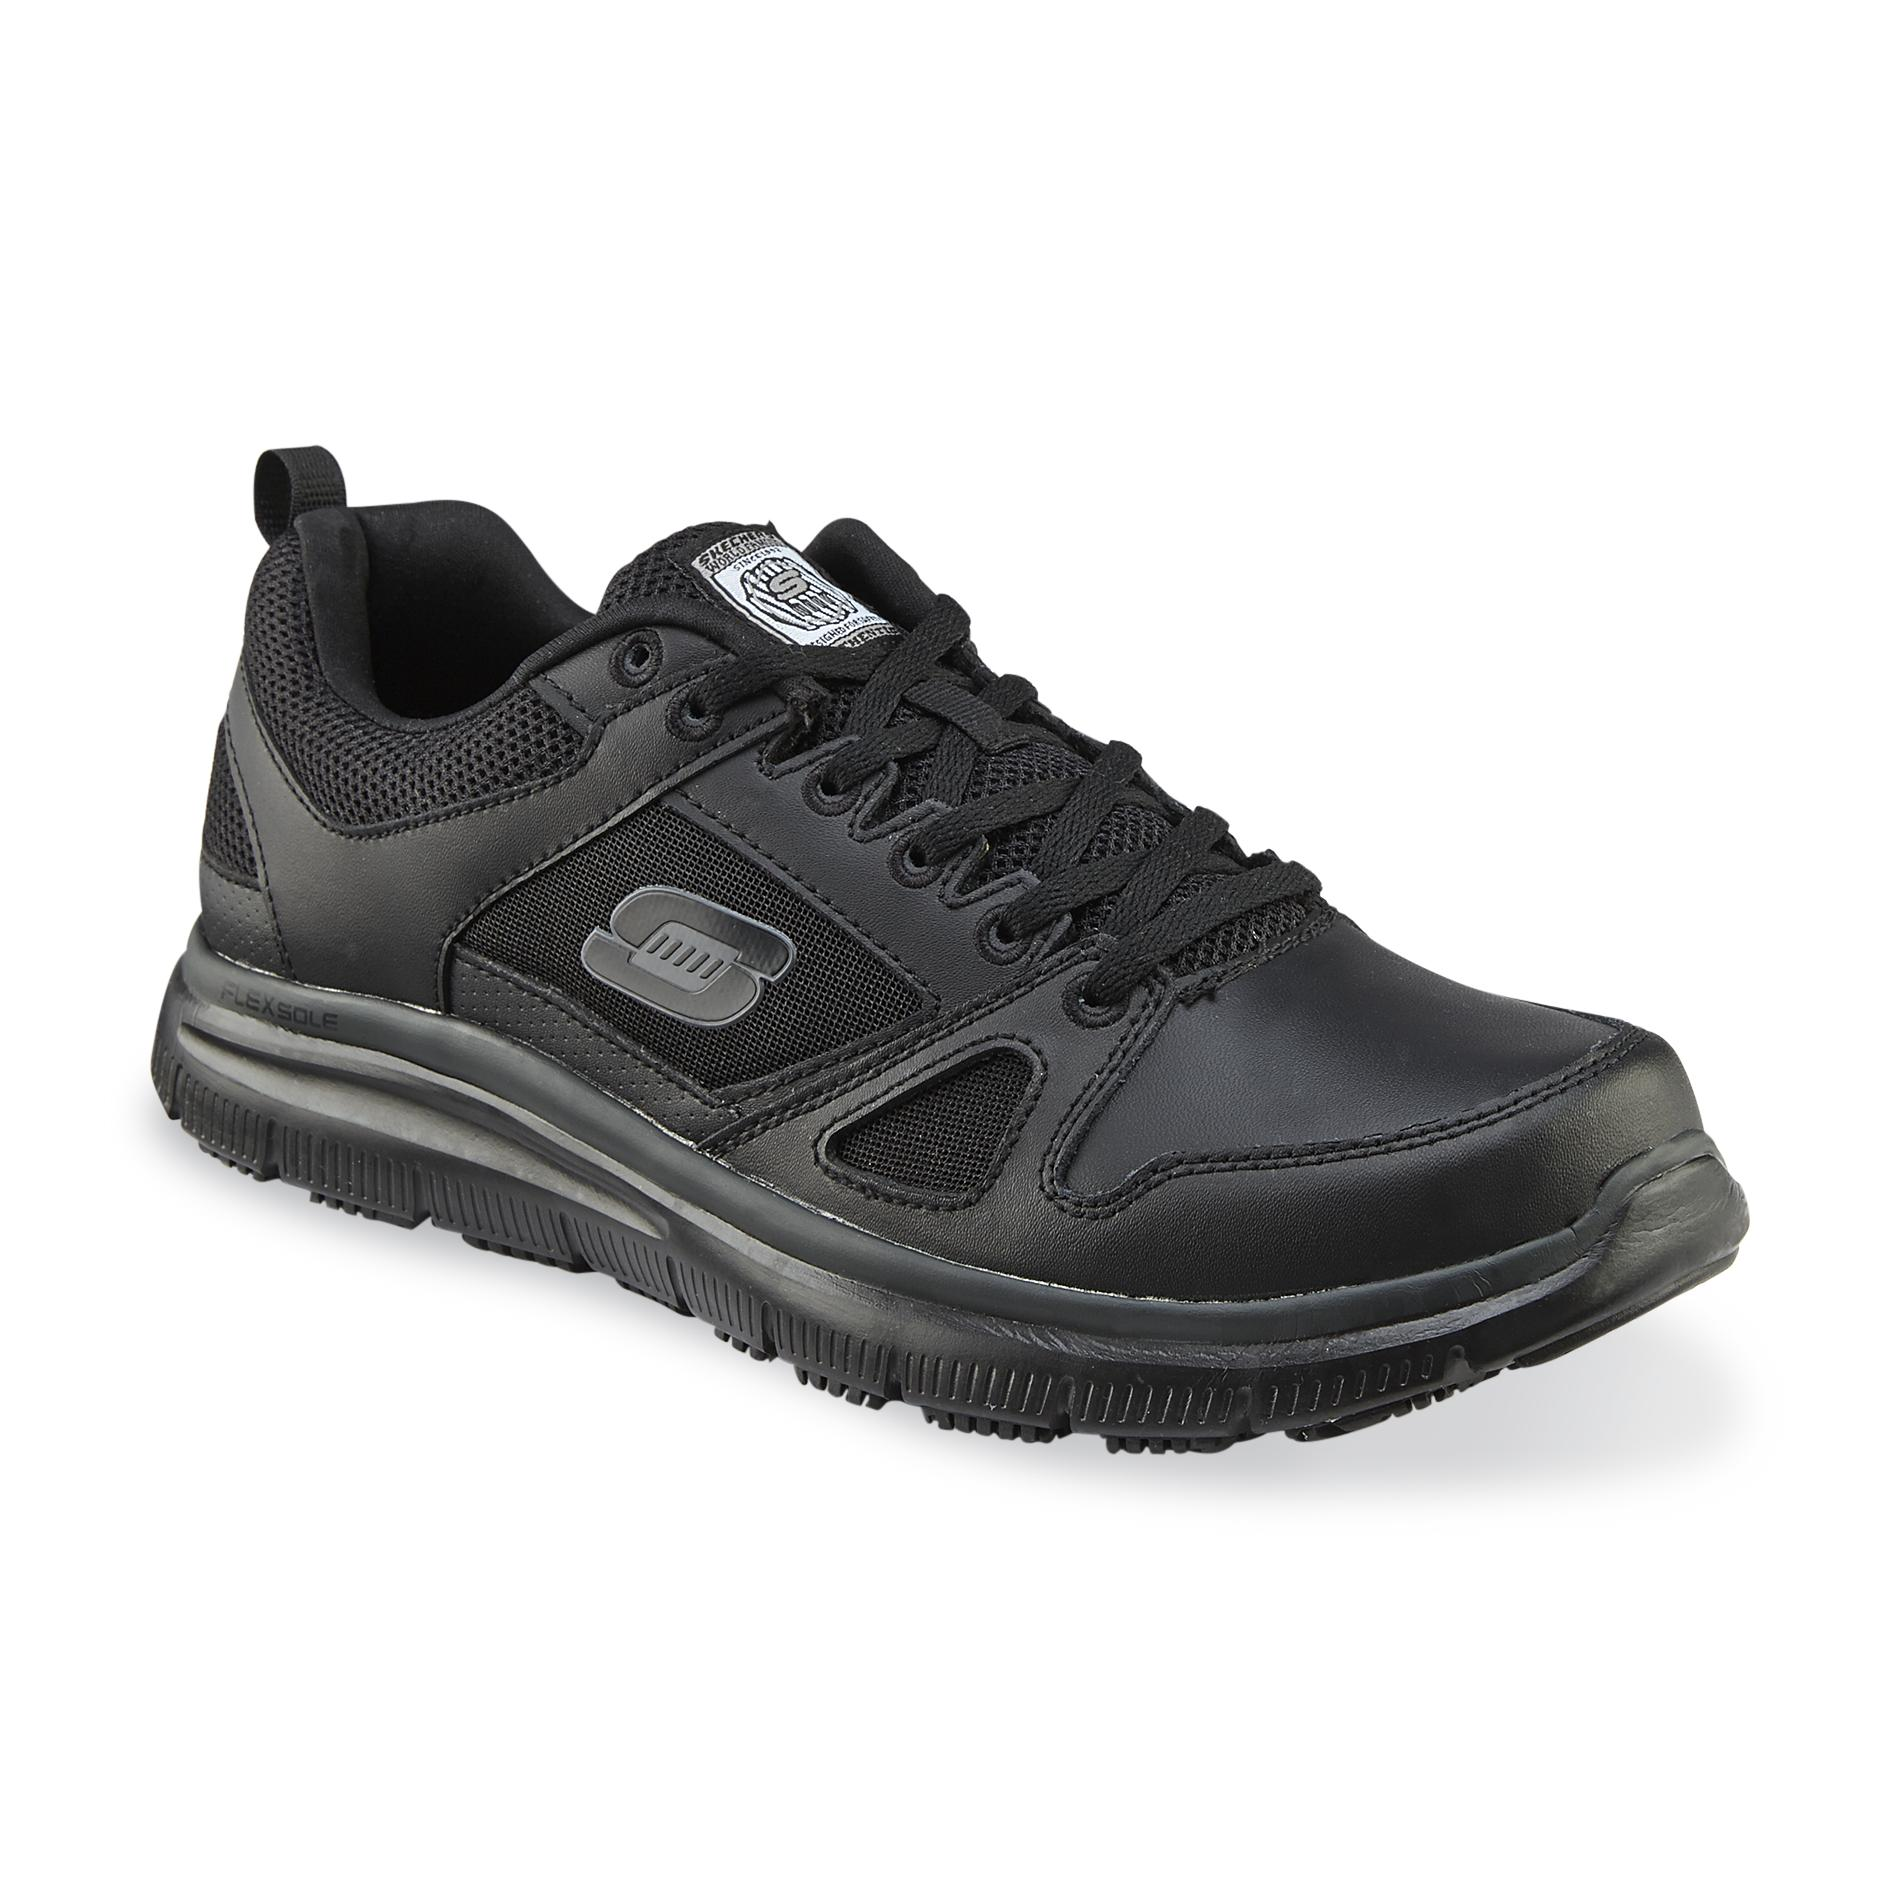 Skechers Men's Flex Advantage Black Work Shoe